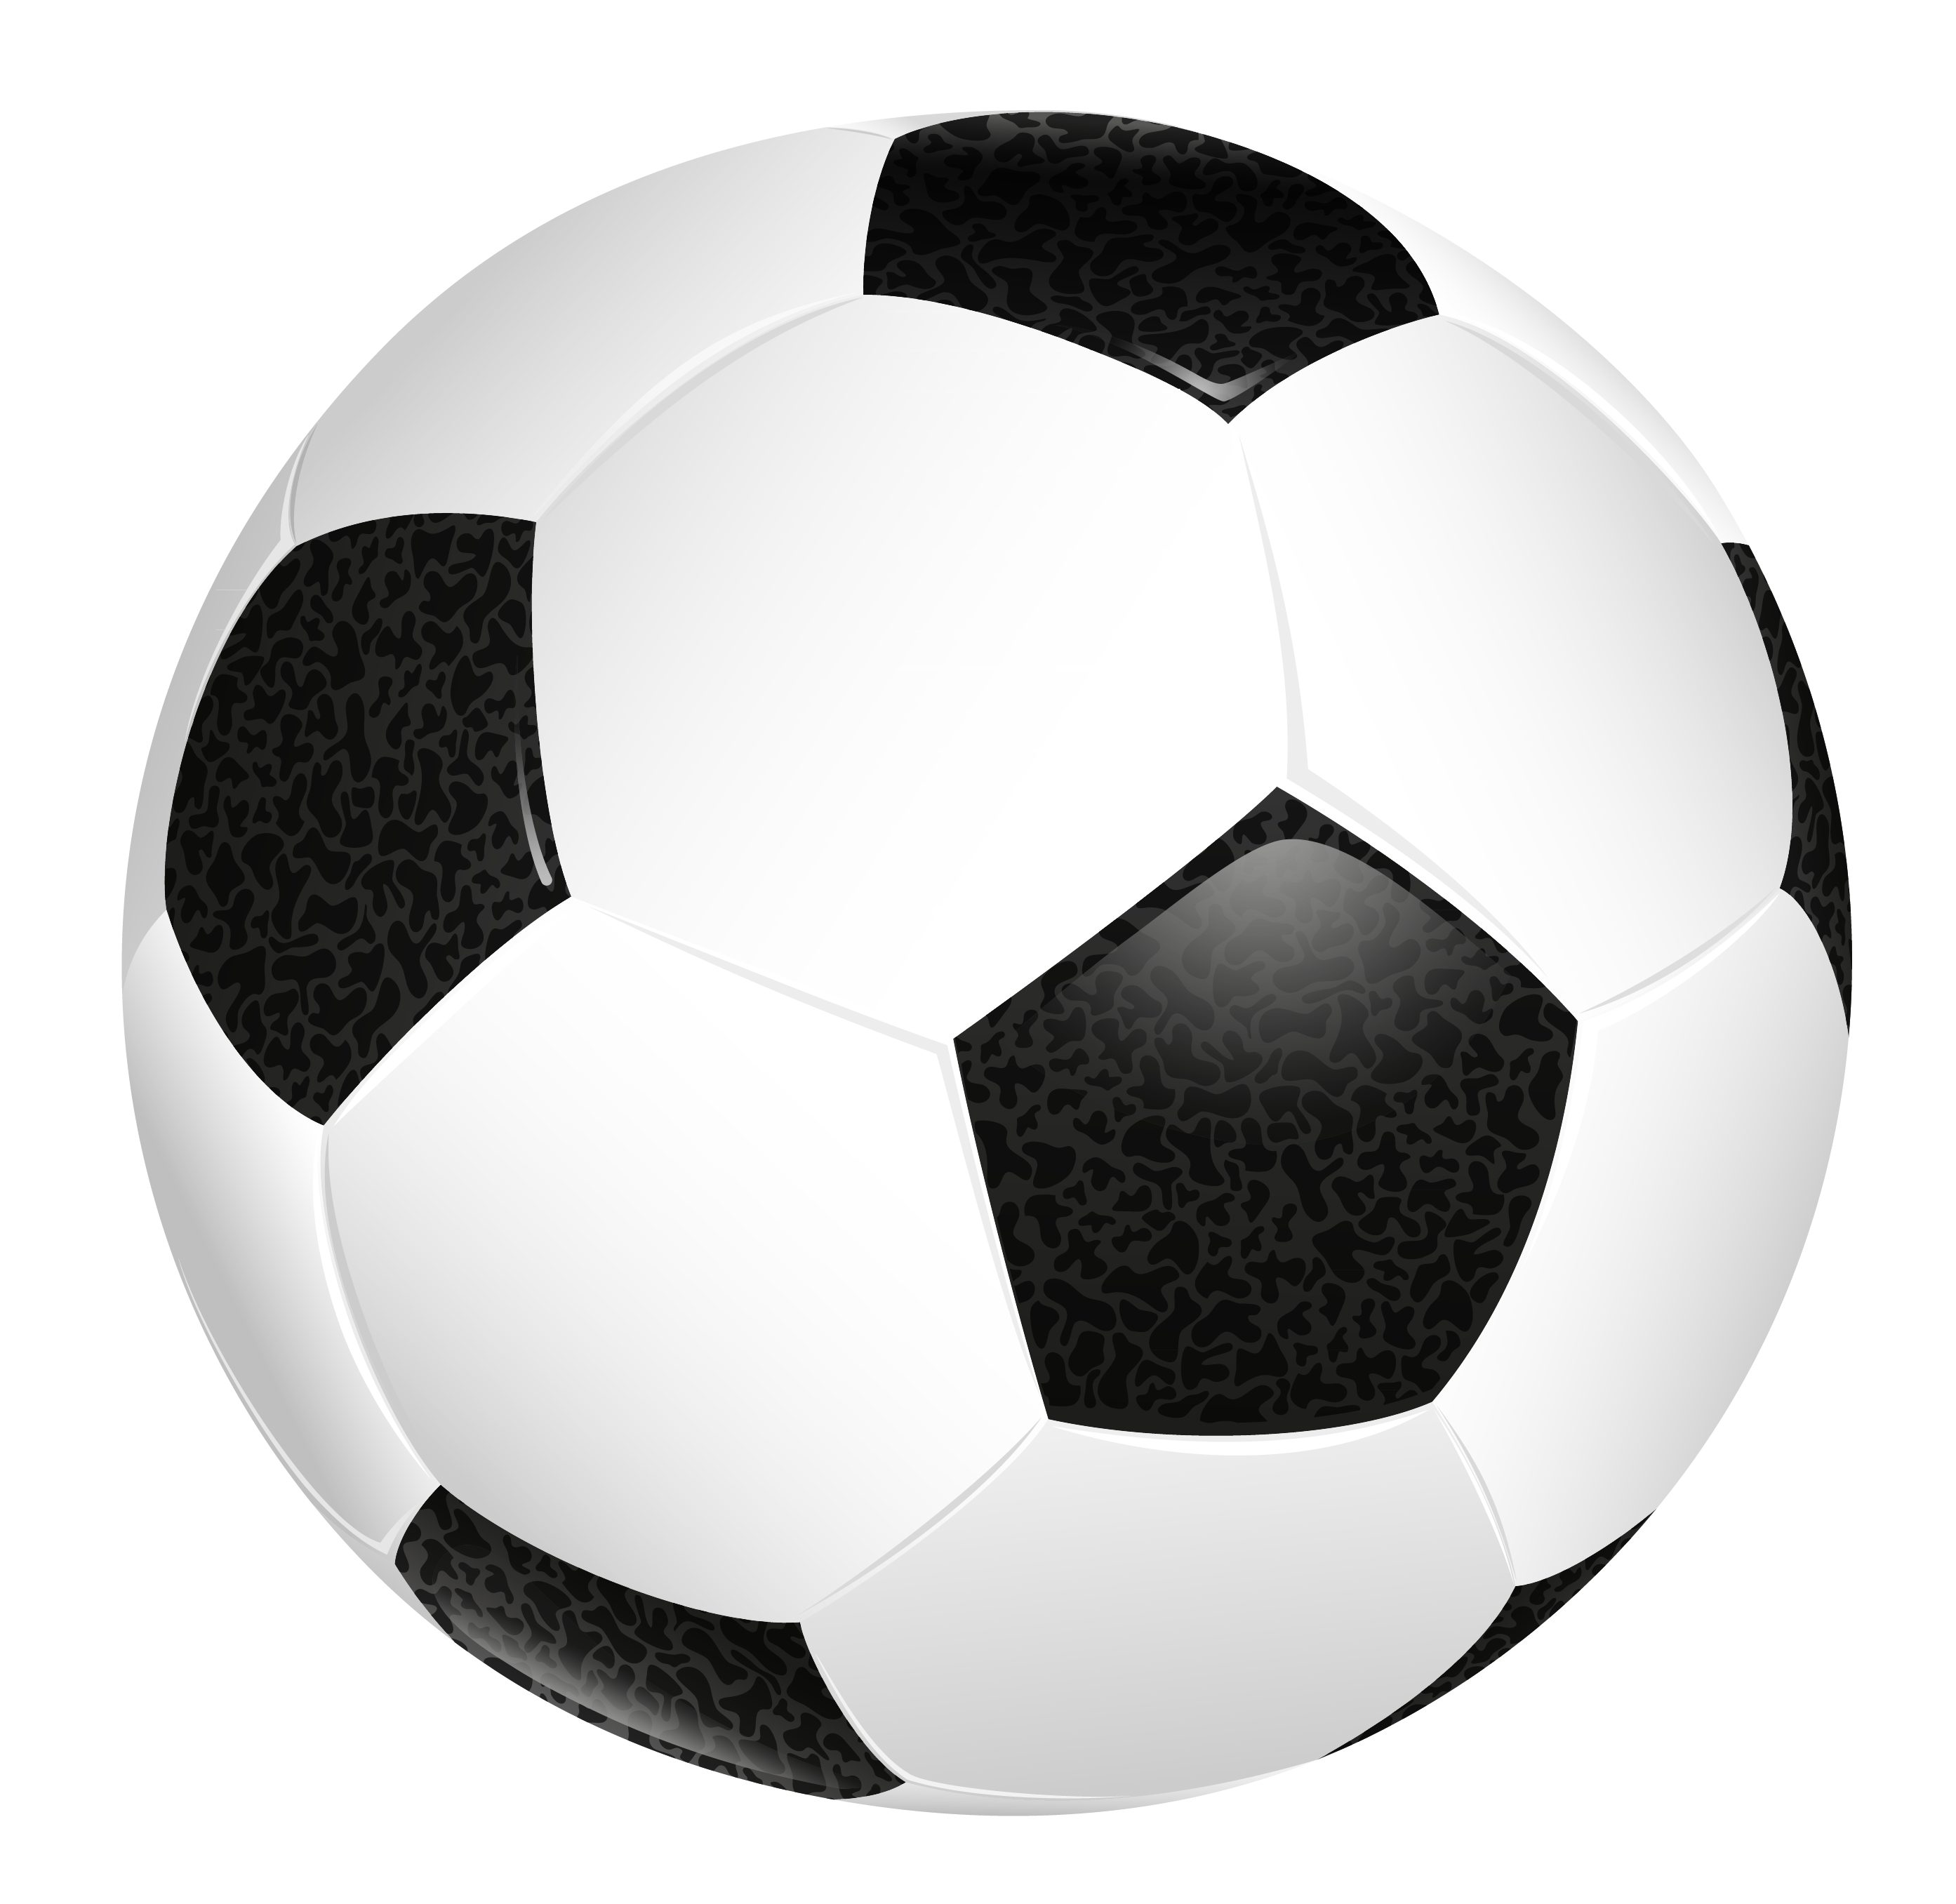 soccer ball png clear background